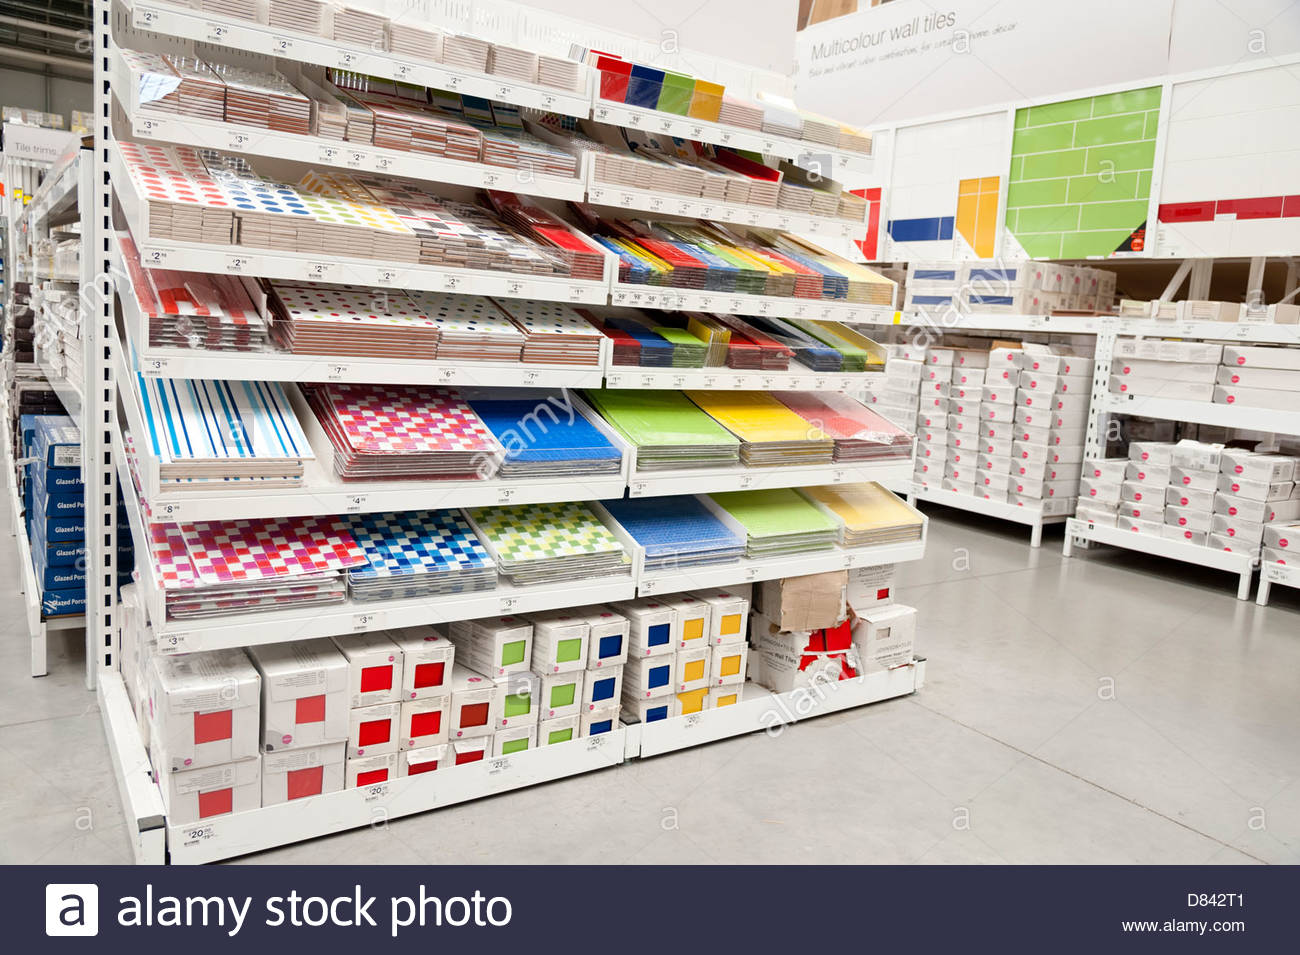 Wall Tiles For Sale In A B Q Store Bristol Uk Stock Photo